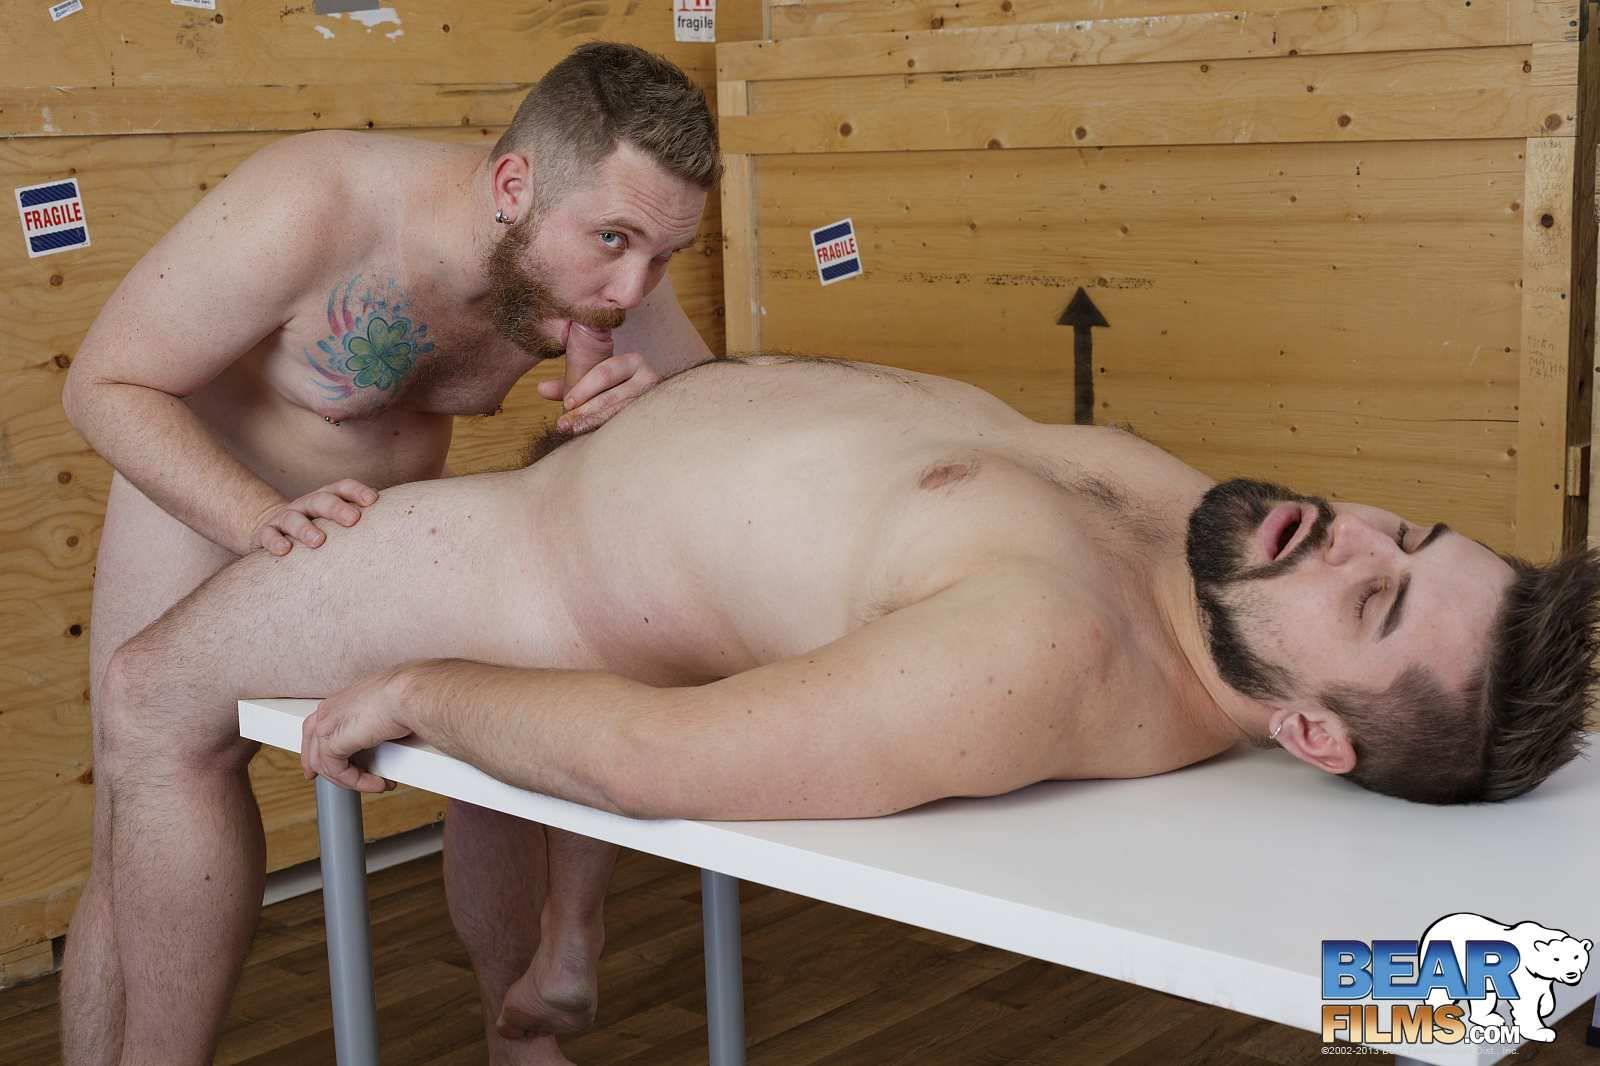 Bear-Films-Guermica-and-Sammy-Clover-Chubby-Bears-Sucking-Thick-Cocks-Amateur-Gay-Porn-16 Hairy Chubby Bears Sucking On Each Other's Thick Uncut Cocks